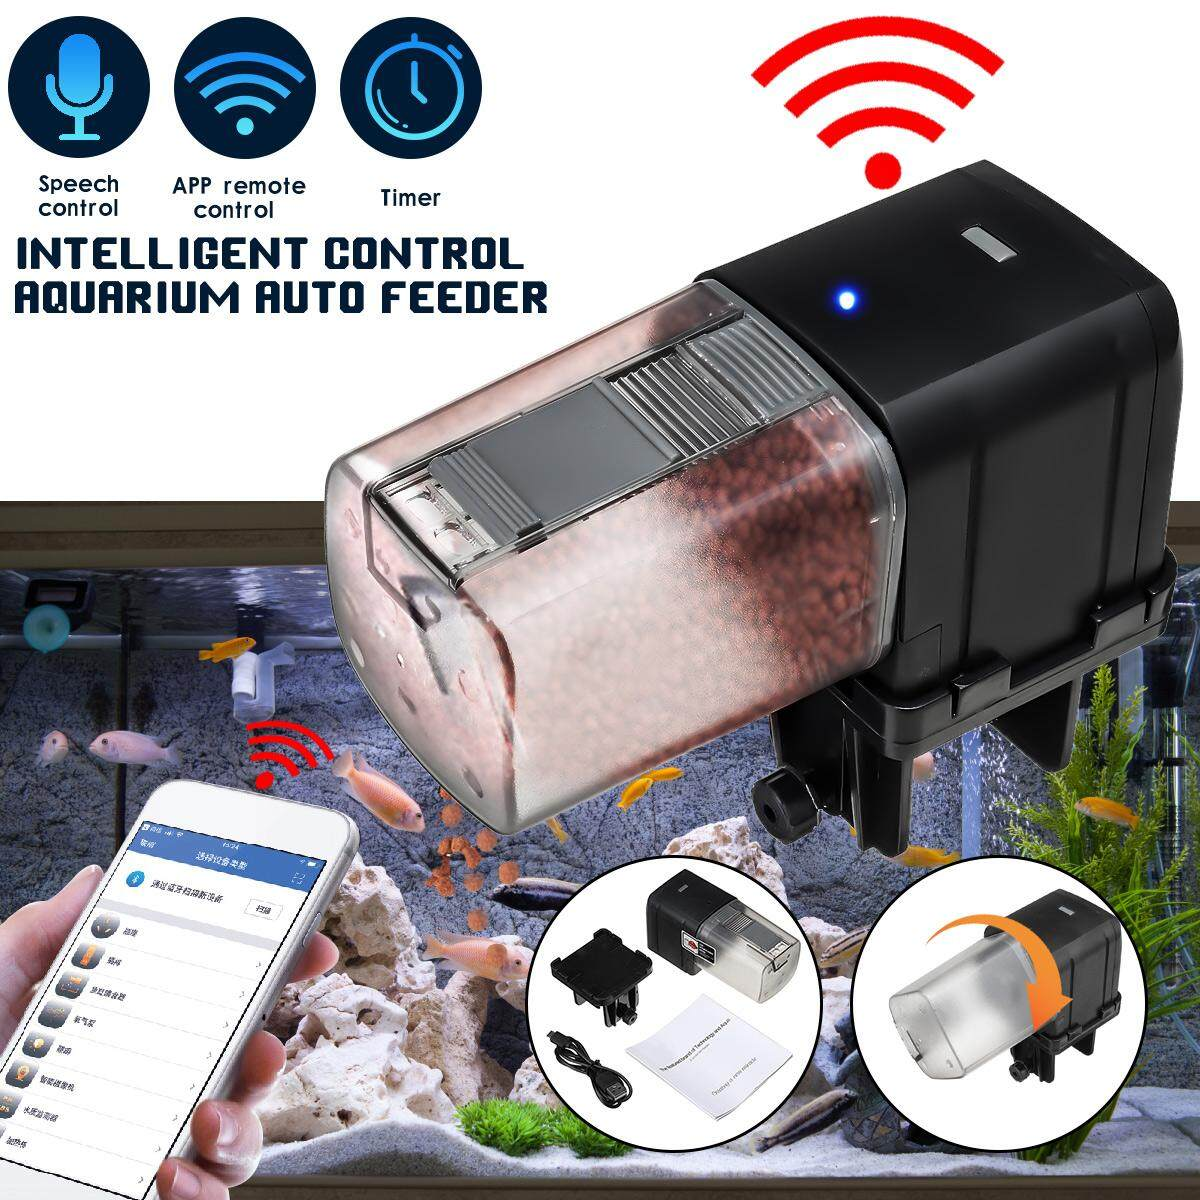 Wifi Auto Fish Tank Food Feeder Timer Speech Control Aquarium Pond Dispenser Usb By Audew.